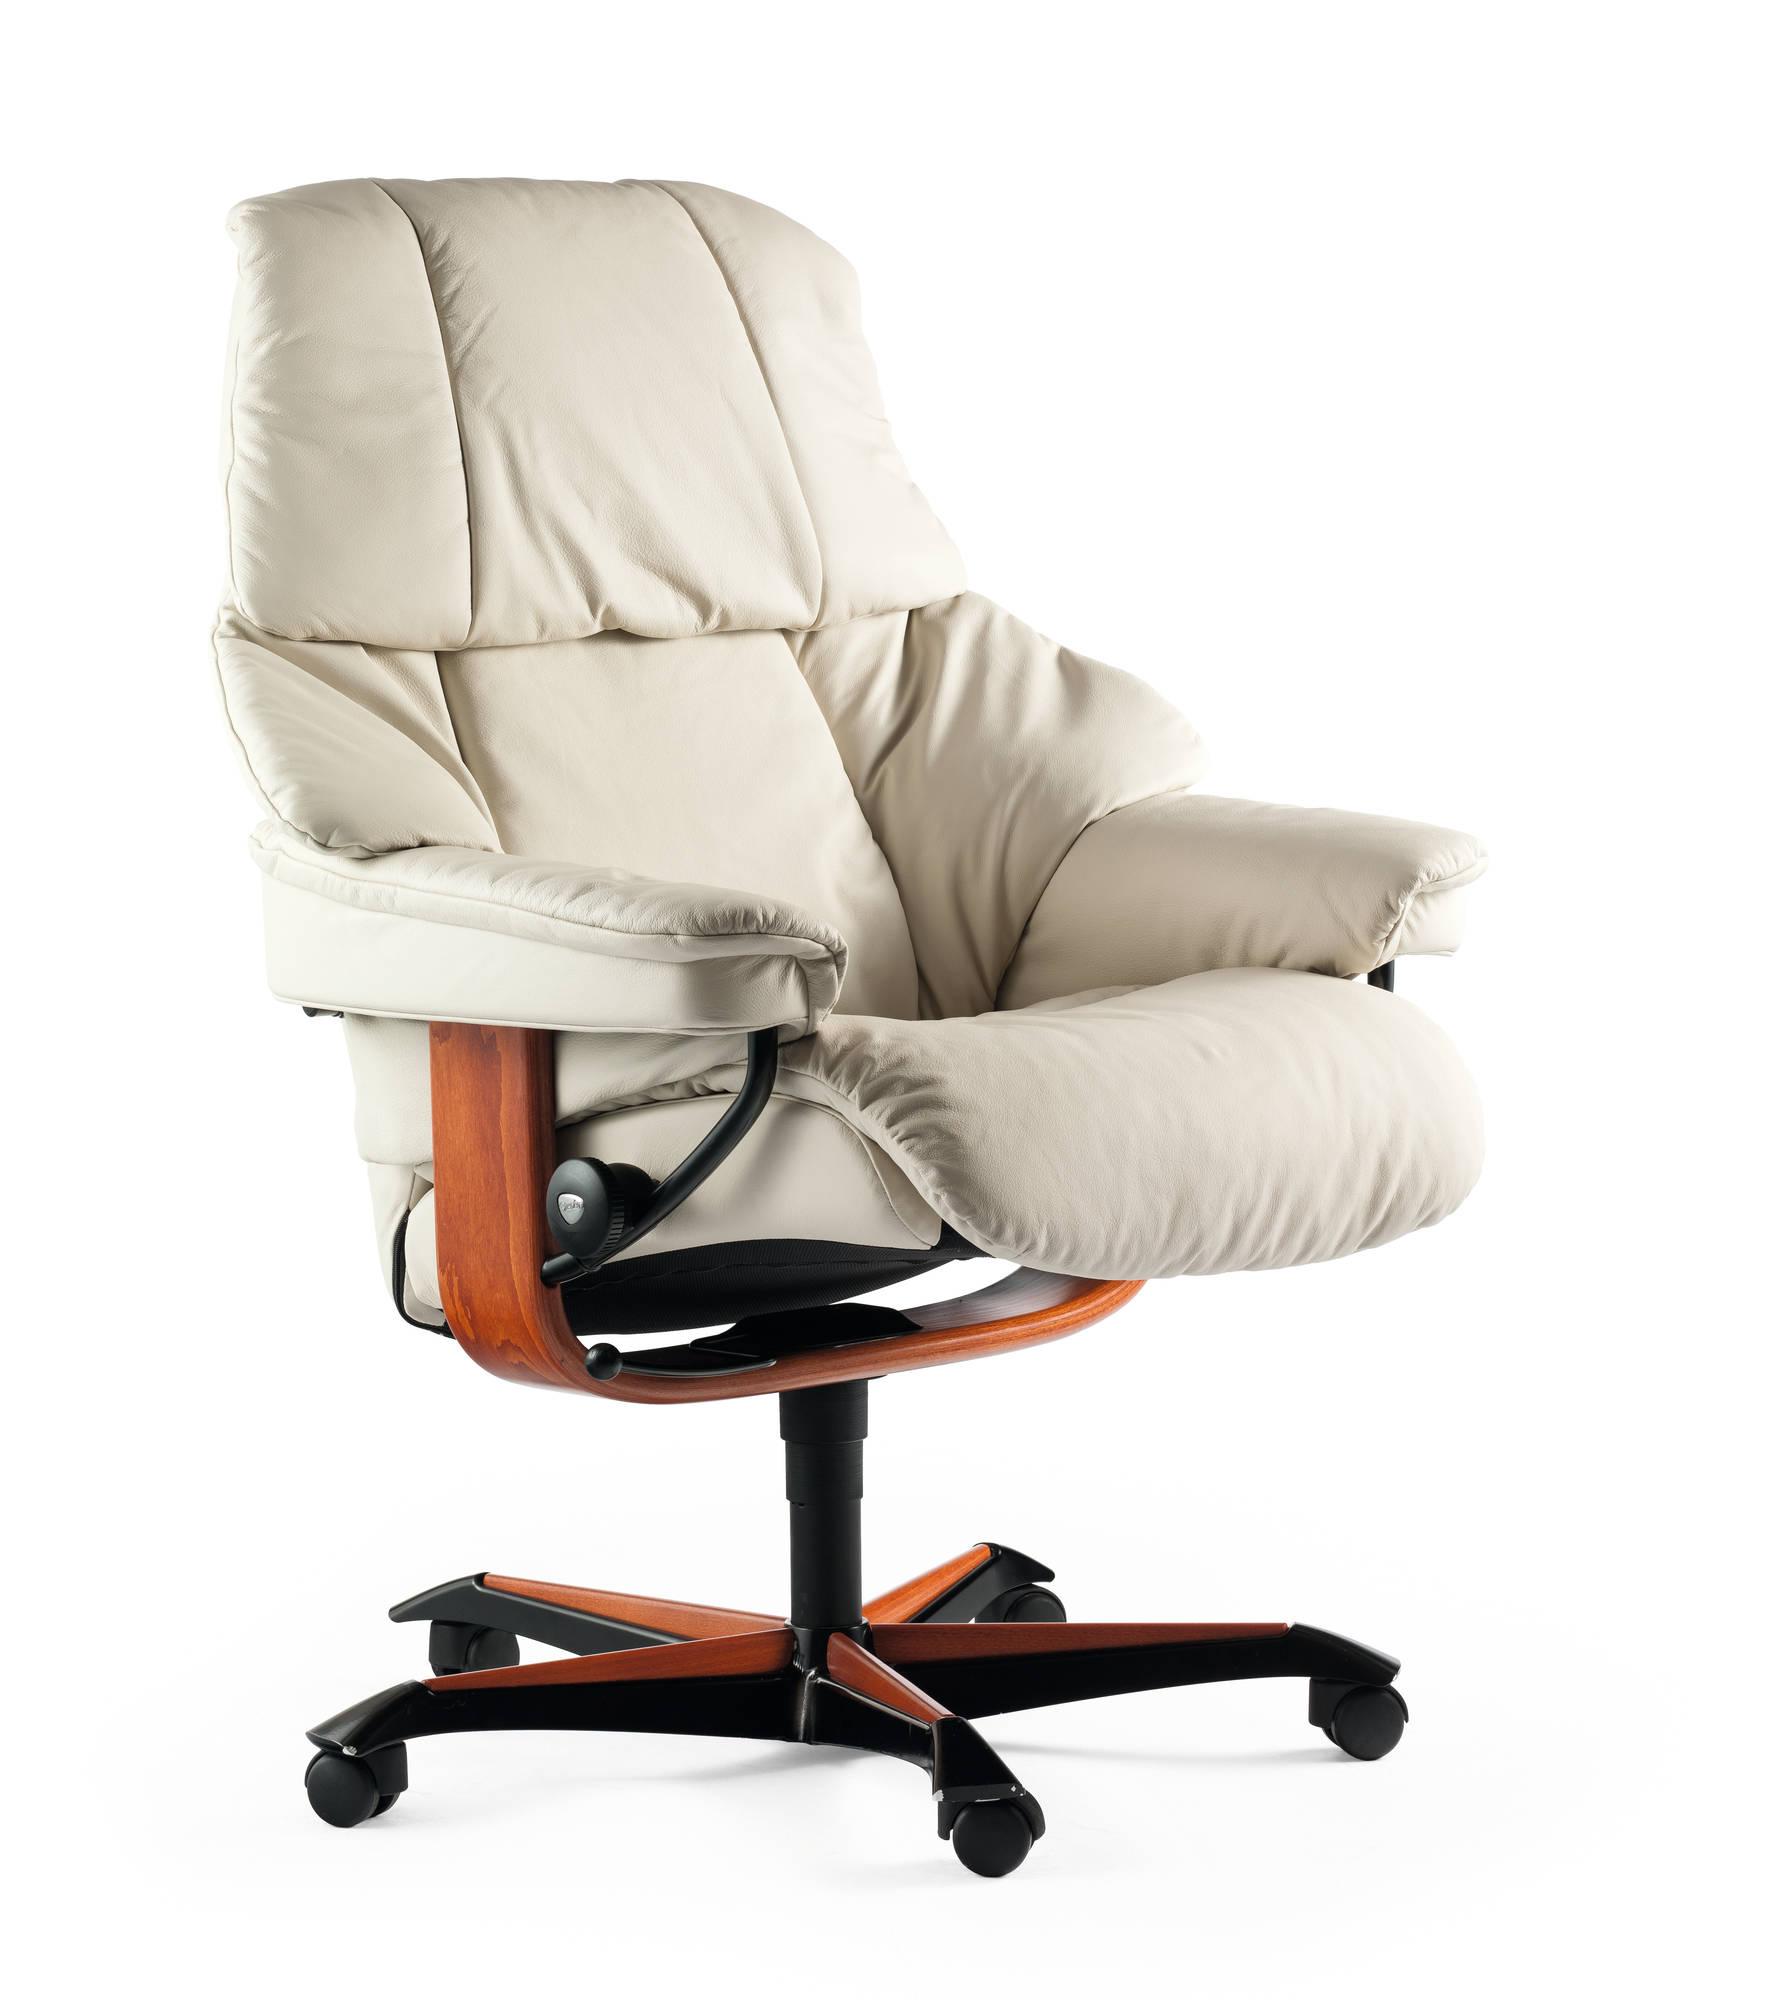 Reno Recliner Office Chair by Ekornes